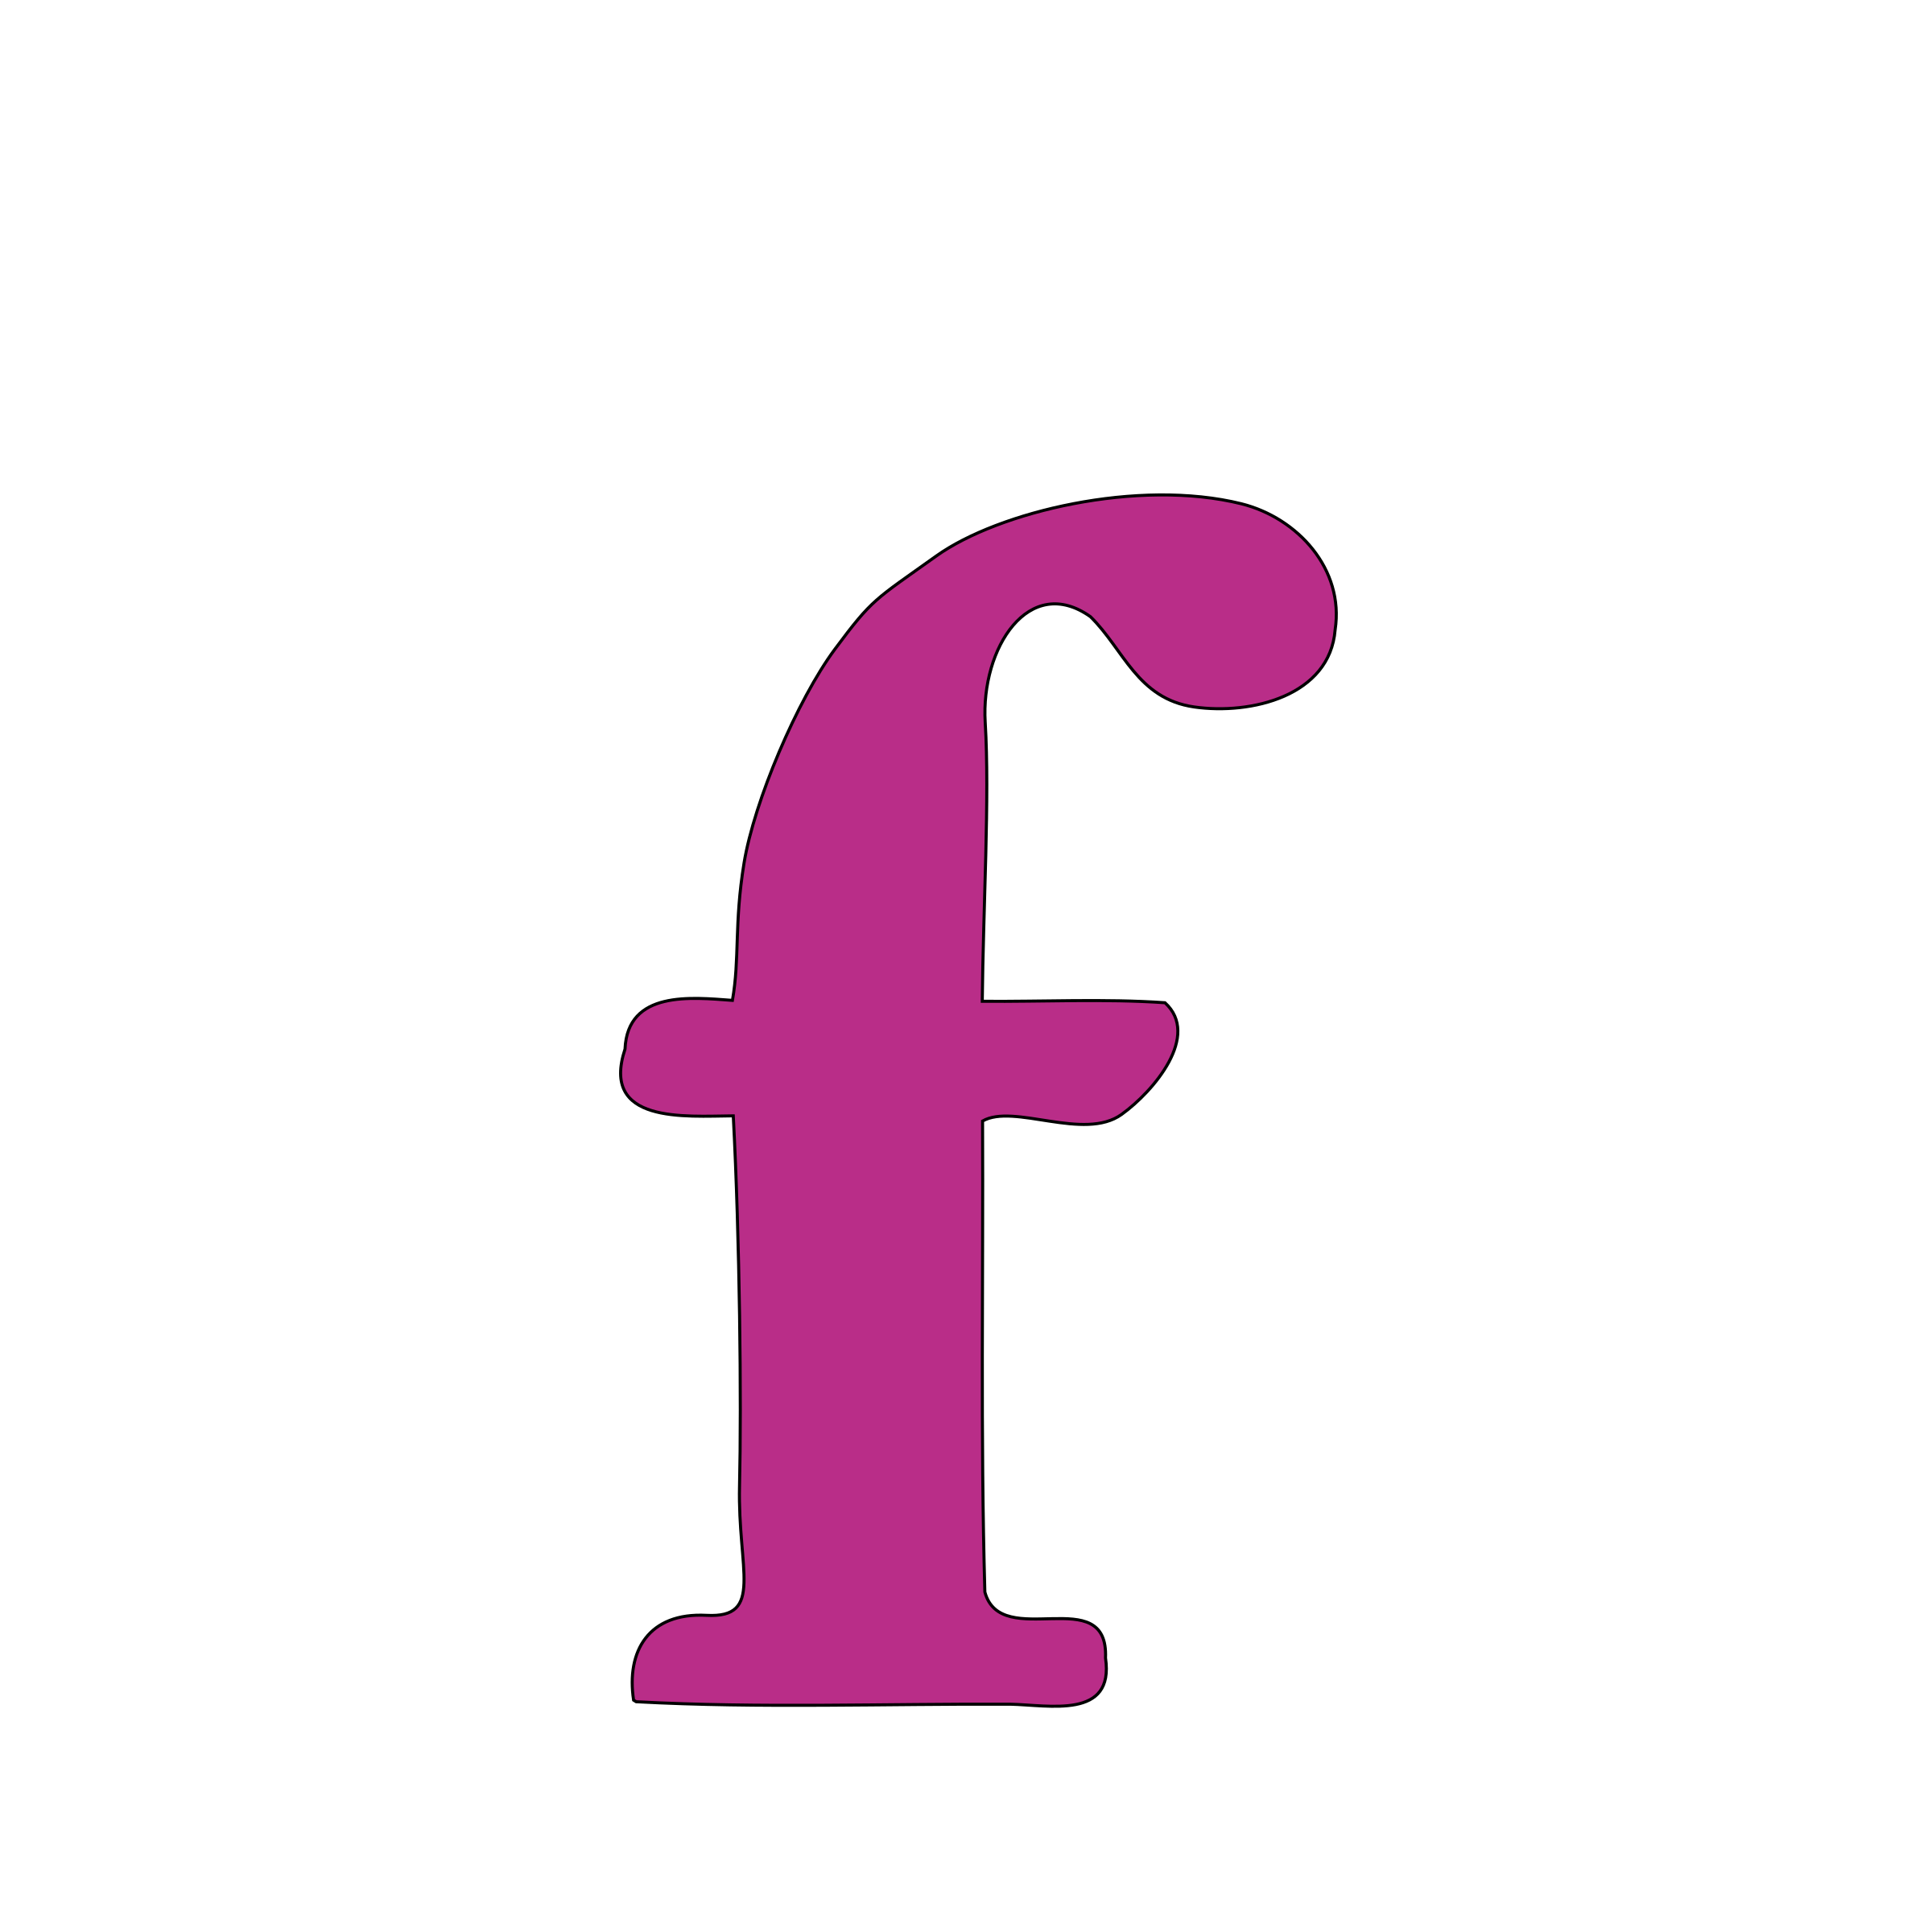 lowercase f by tuamora